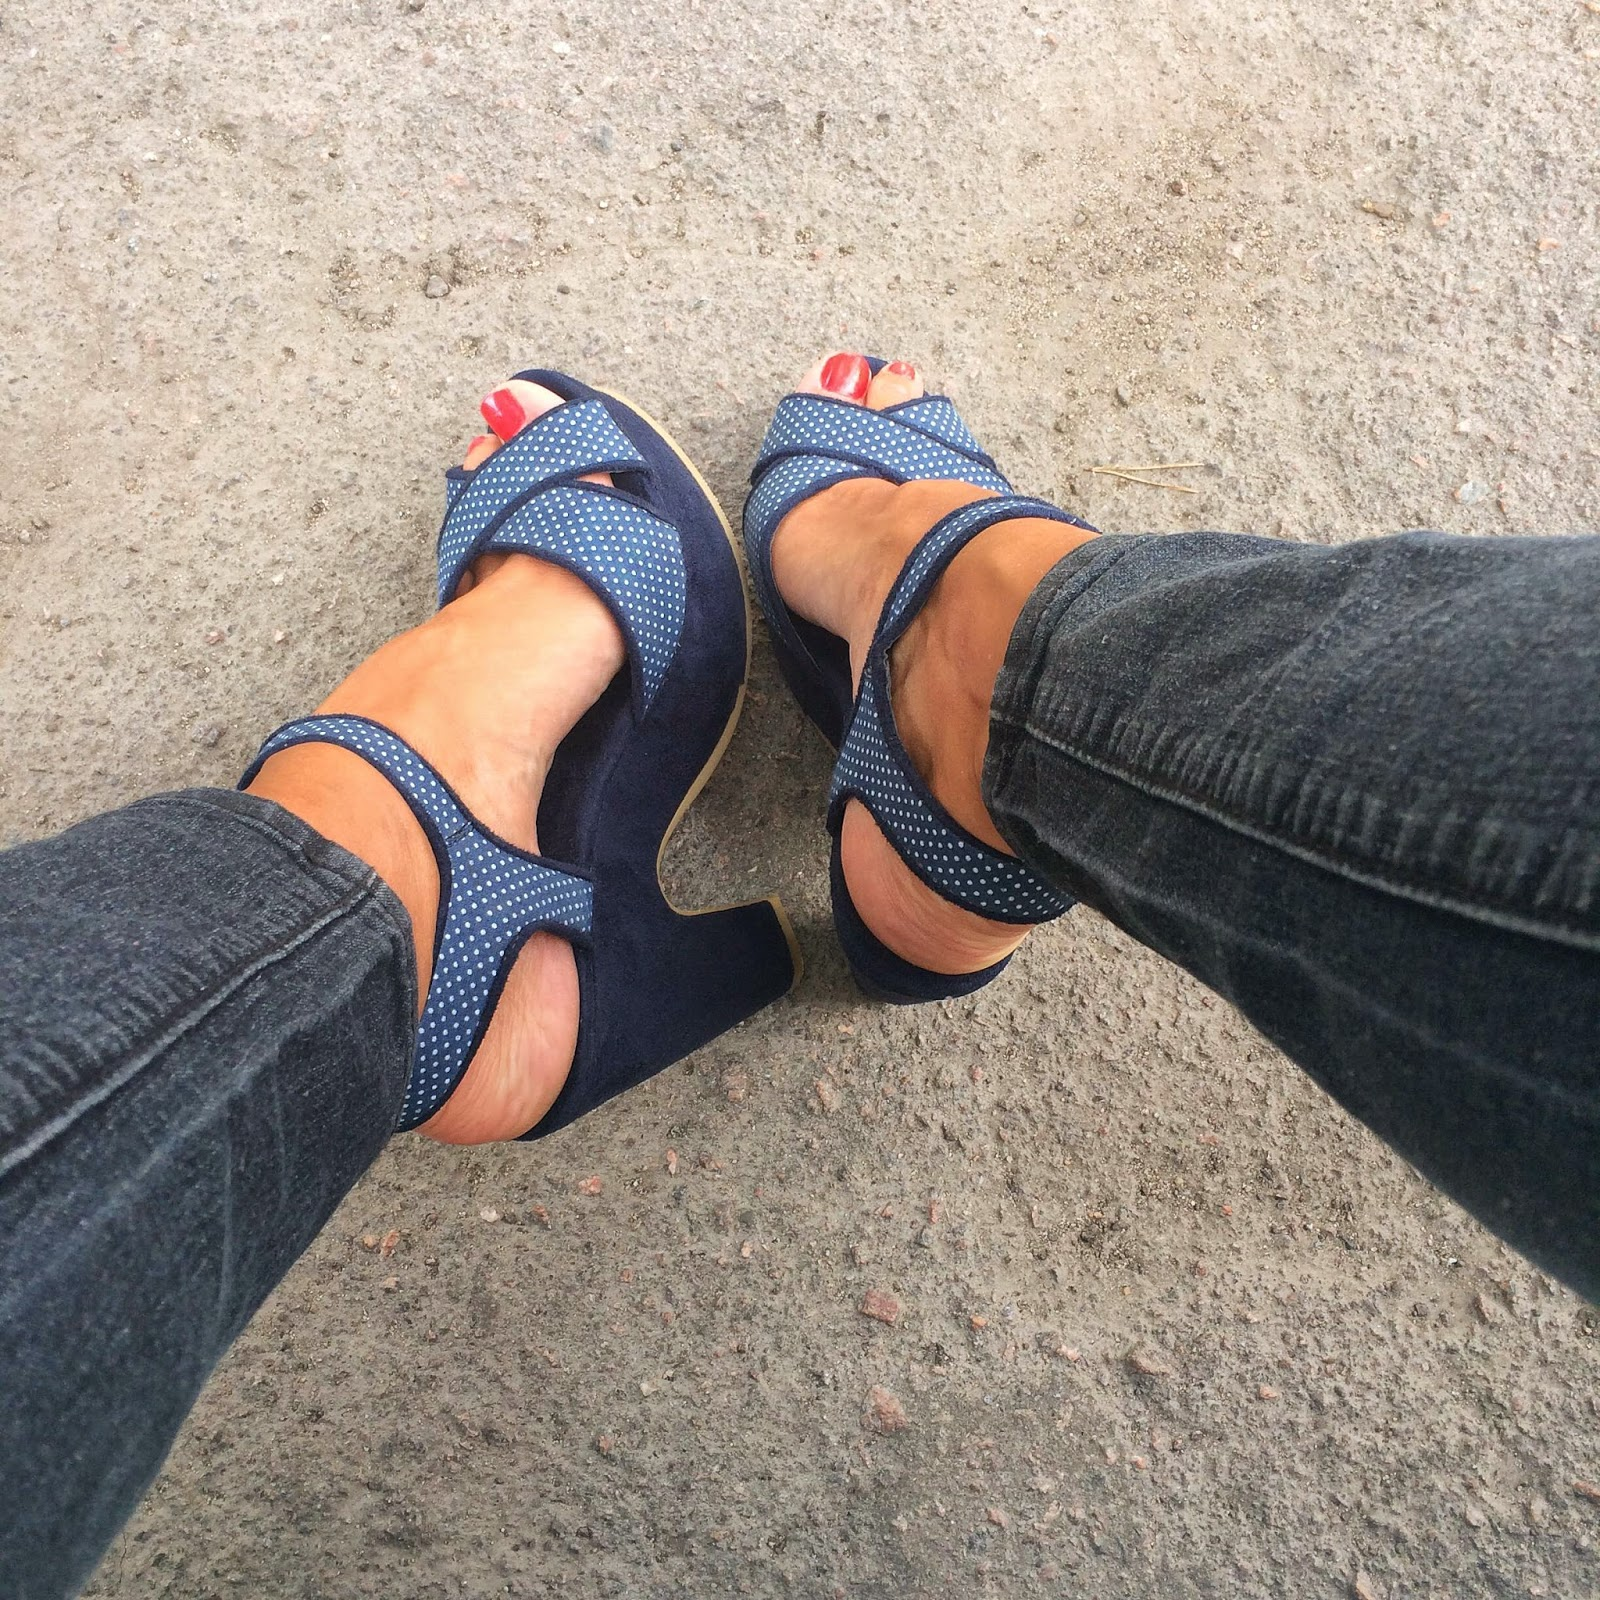 vox shoes blue block heeled sandals